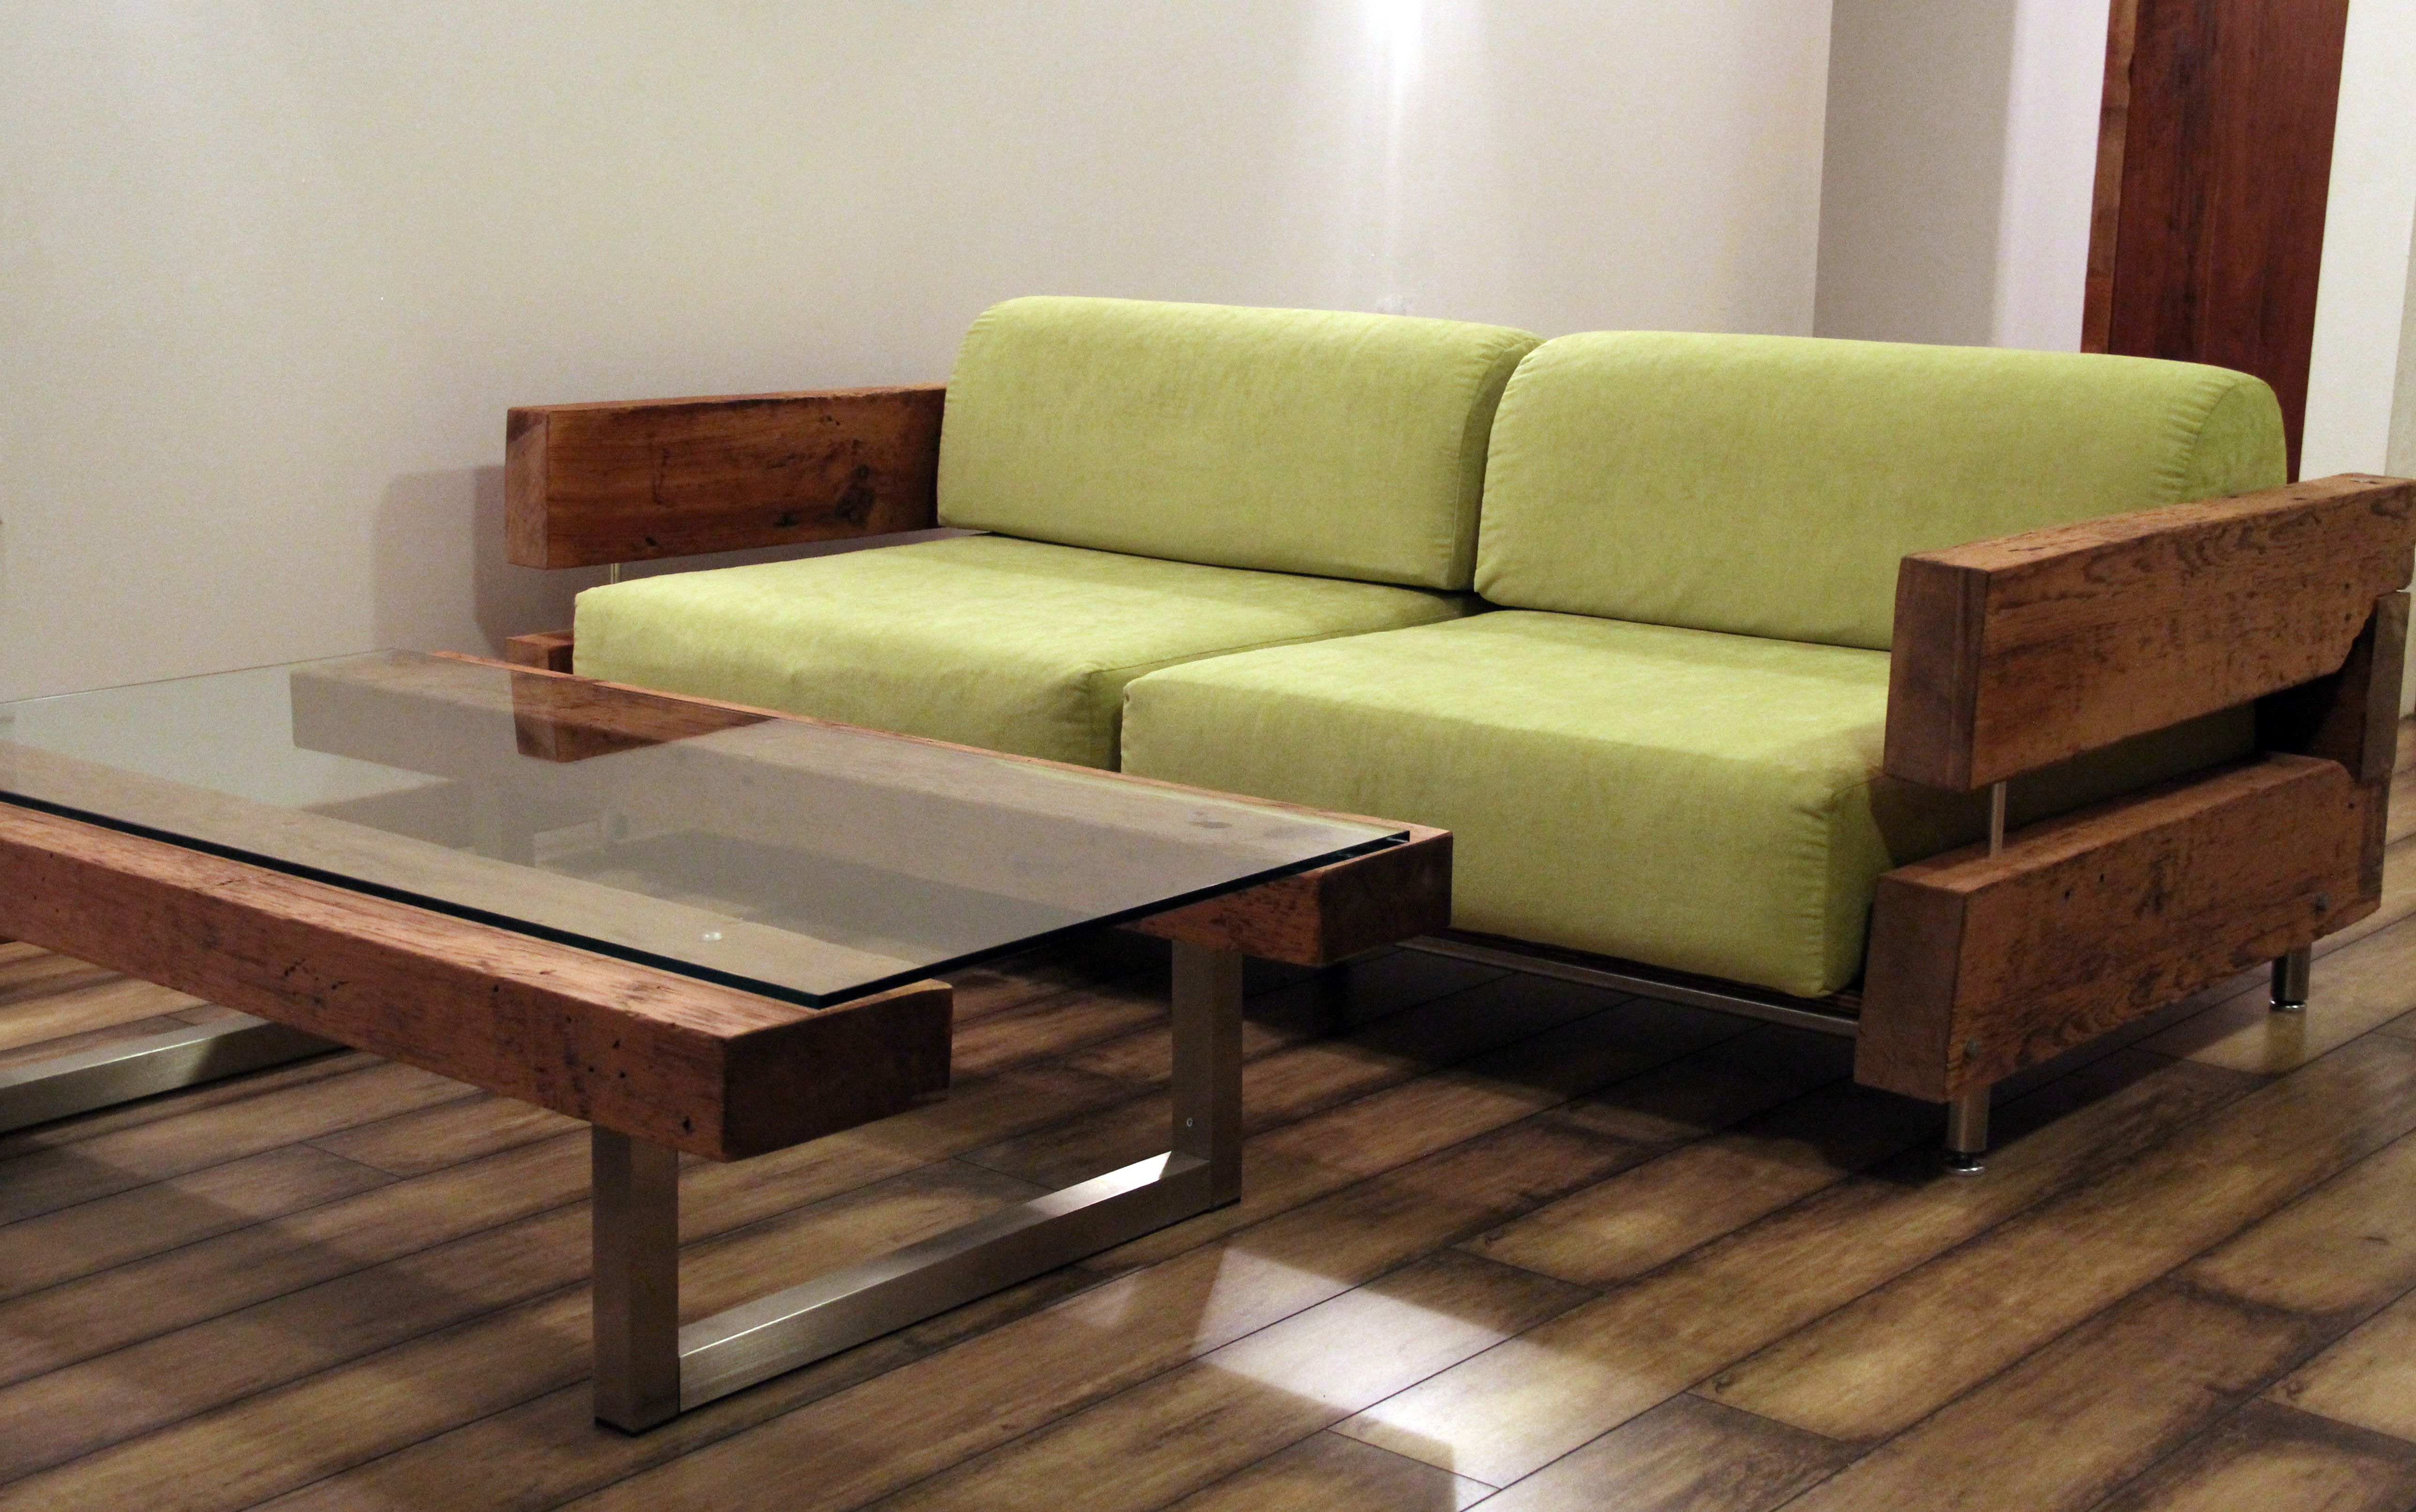 Modern Rustic Couch Rustic Couch Wooden Sofa Designs Modern